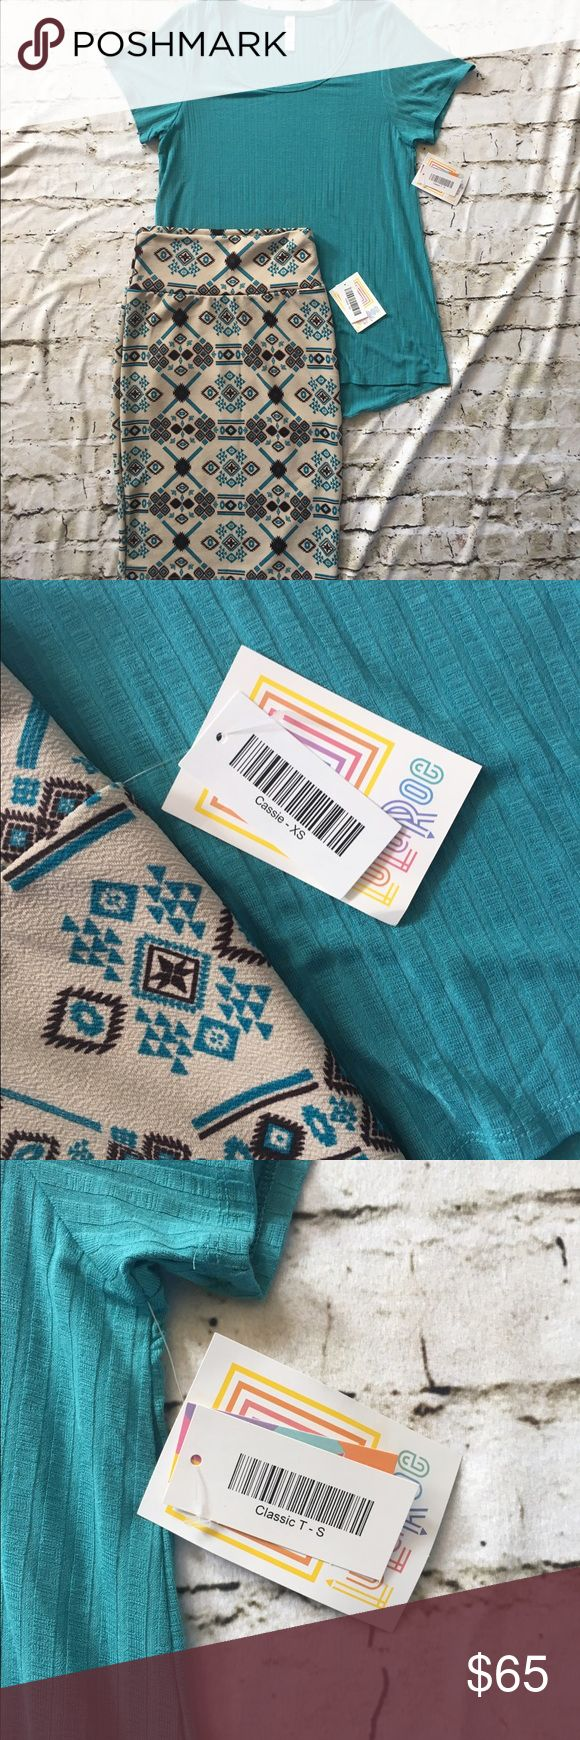 LuLaRoe Cassie Skirt & Classic T Outfit Beautiful brown, teal & beige pencil skirt with matching teal top LuLaRoe Other